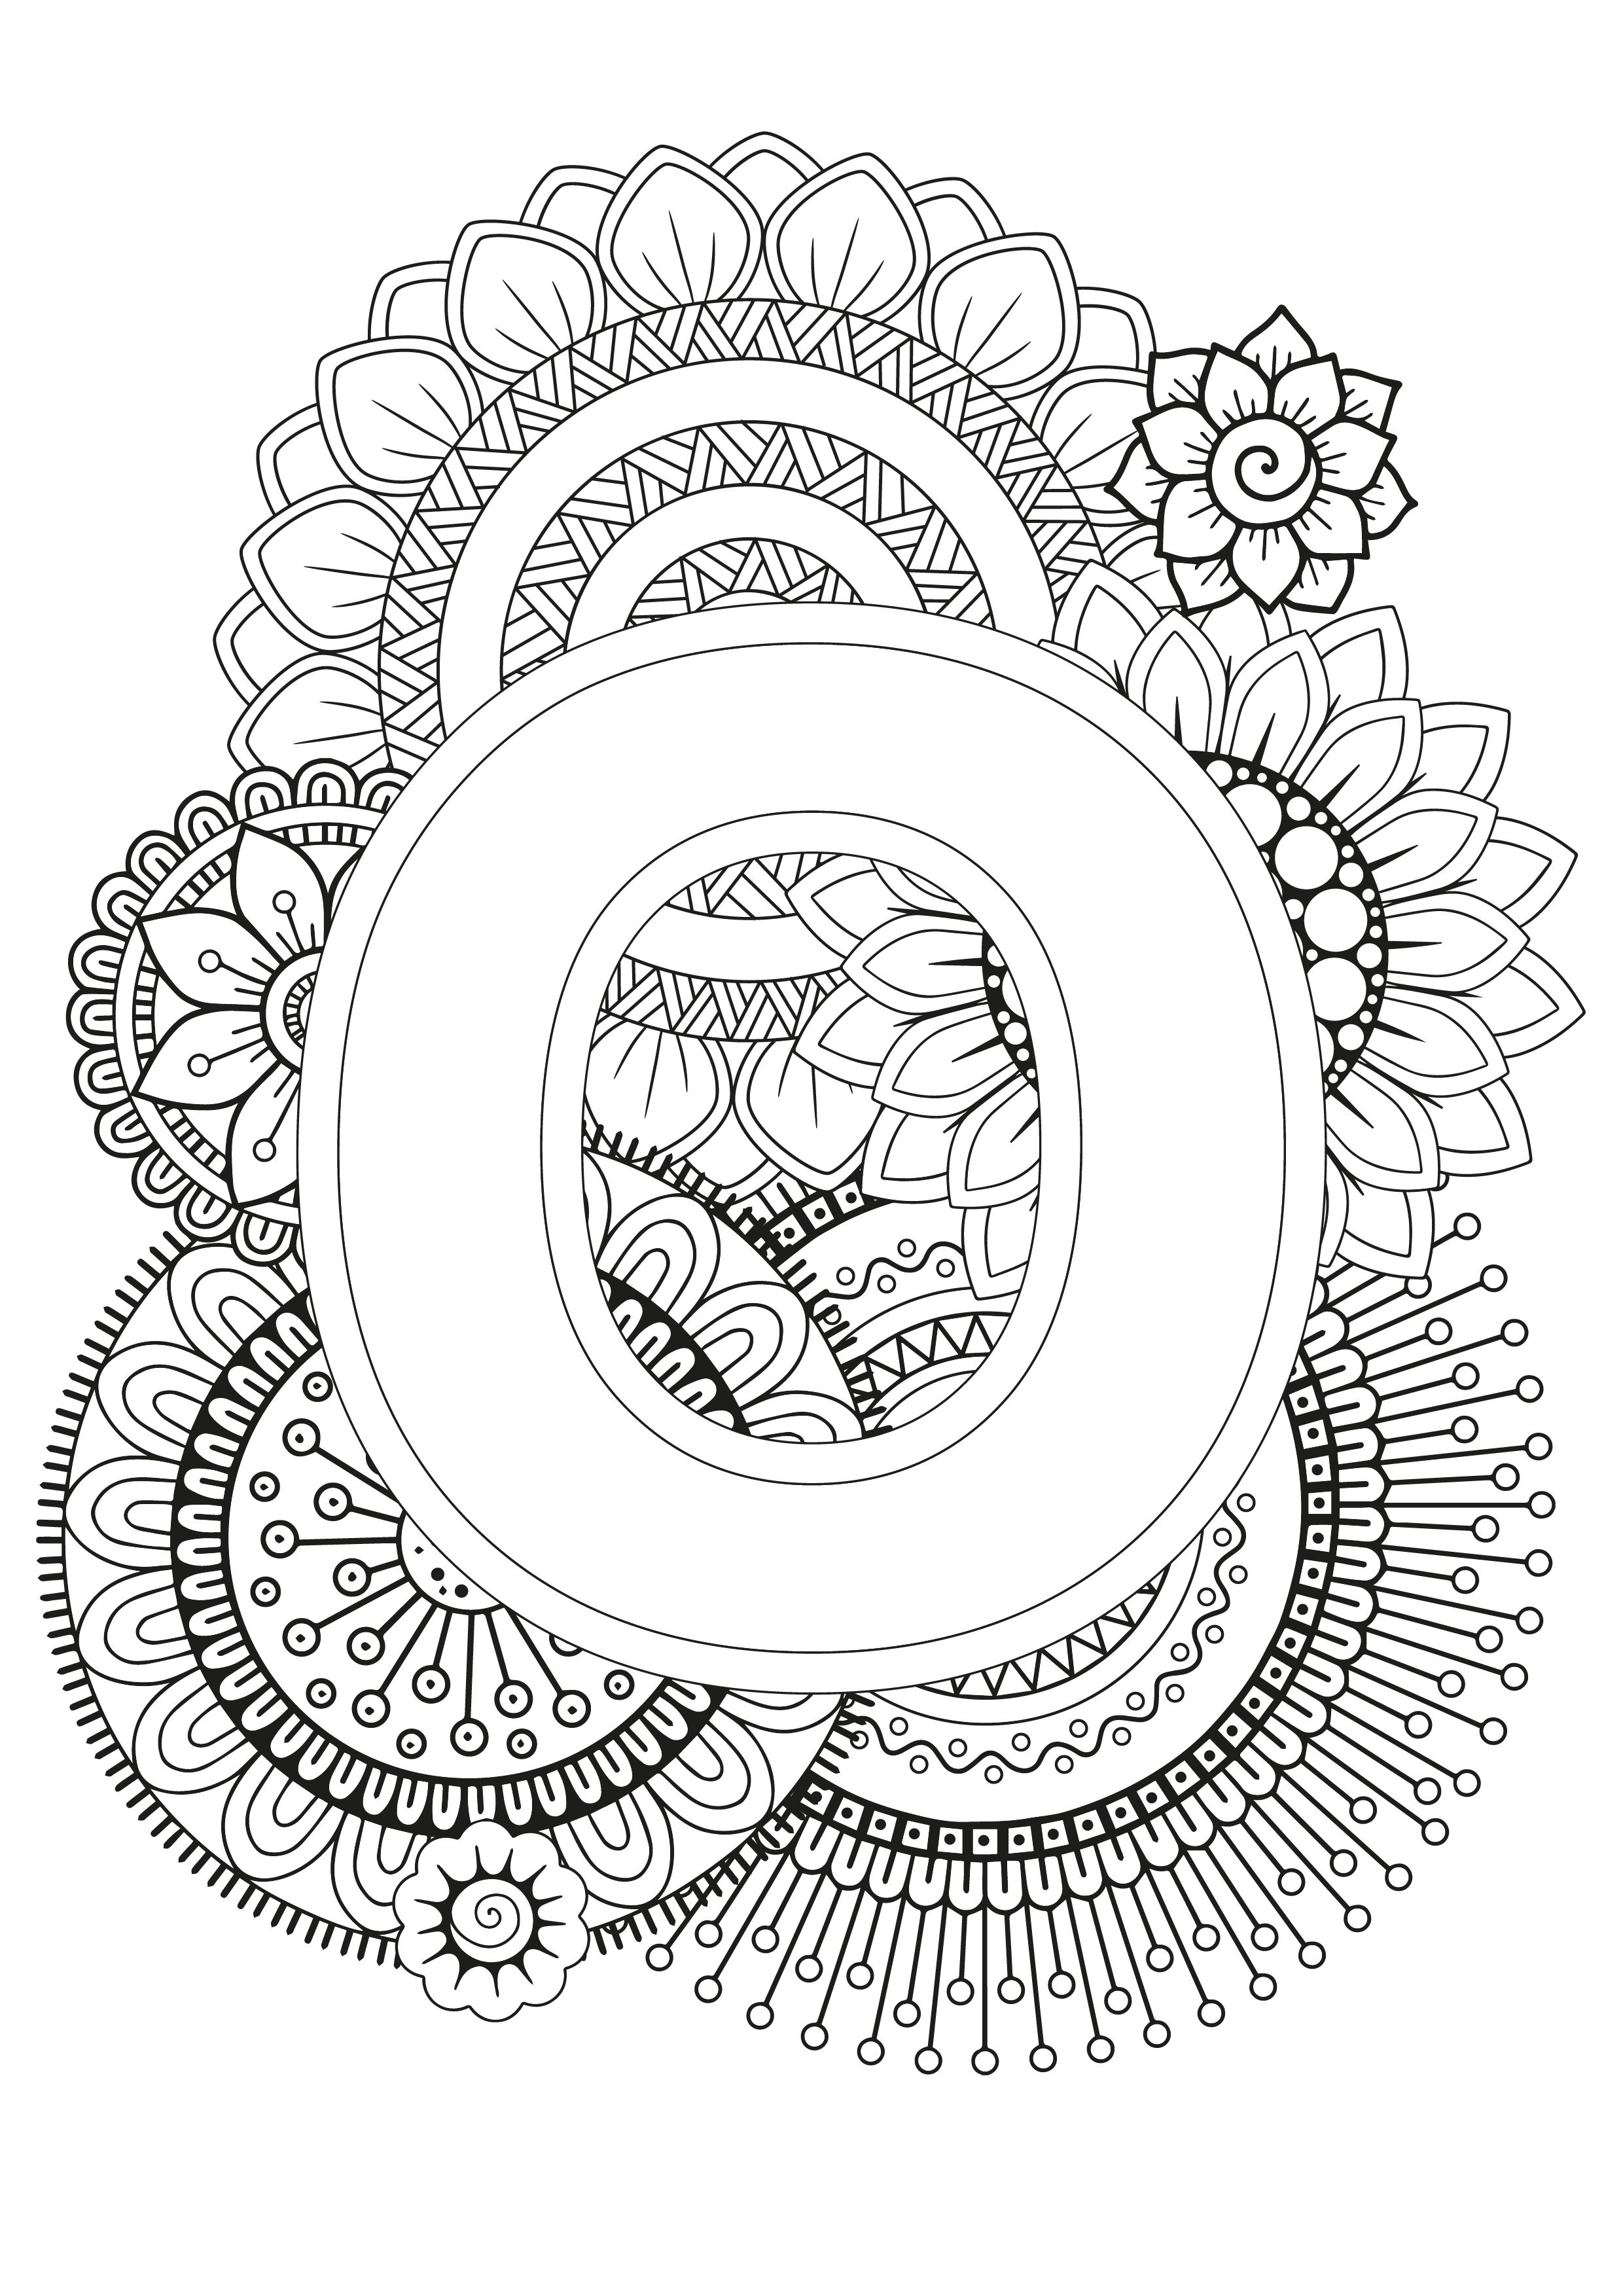 Mindfulness Coloring Page Alphabet Coloring Pages Love Coloring Pages Designs Coloring Books